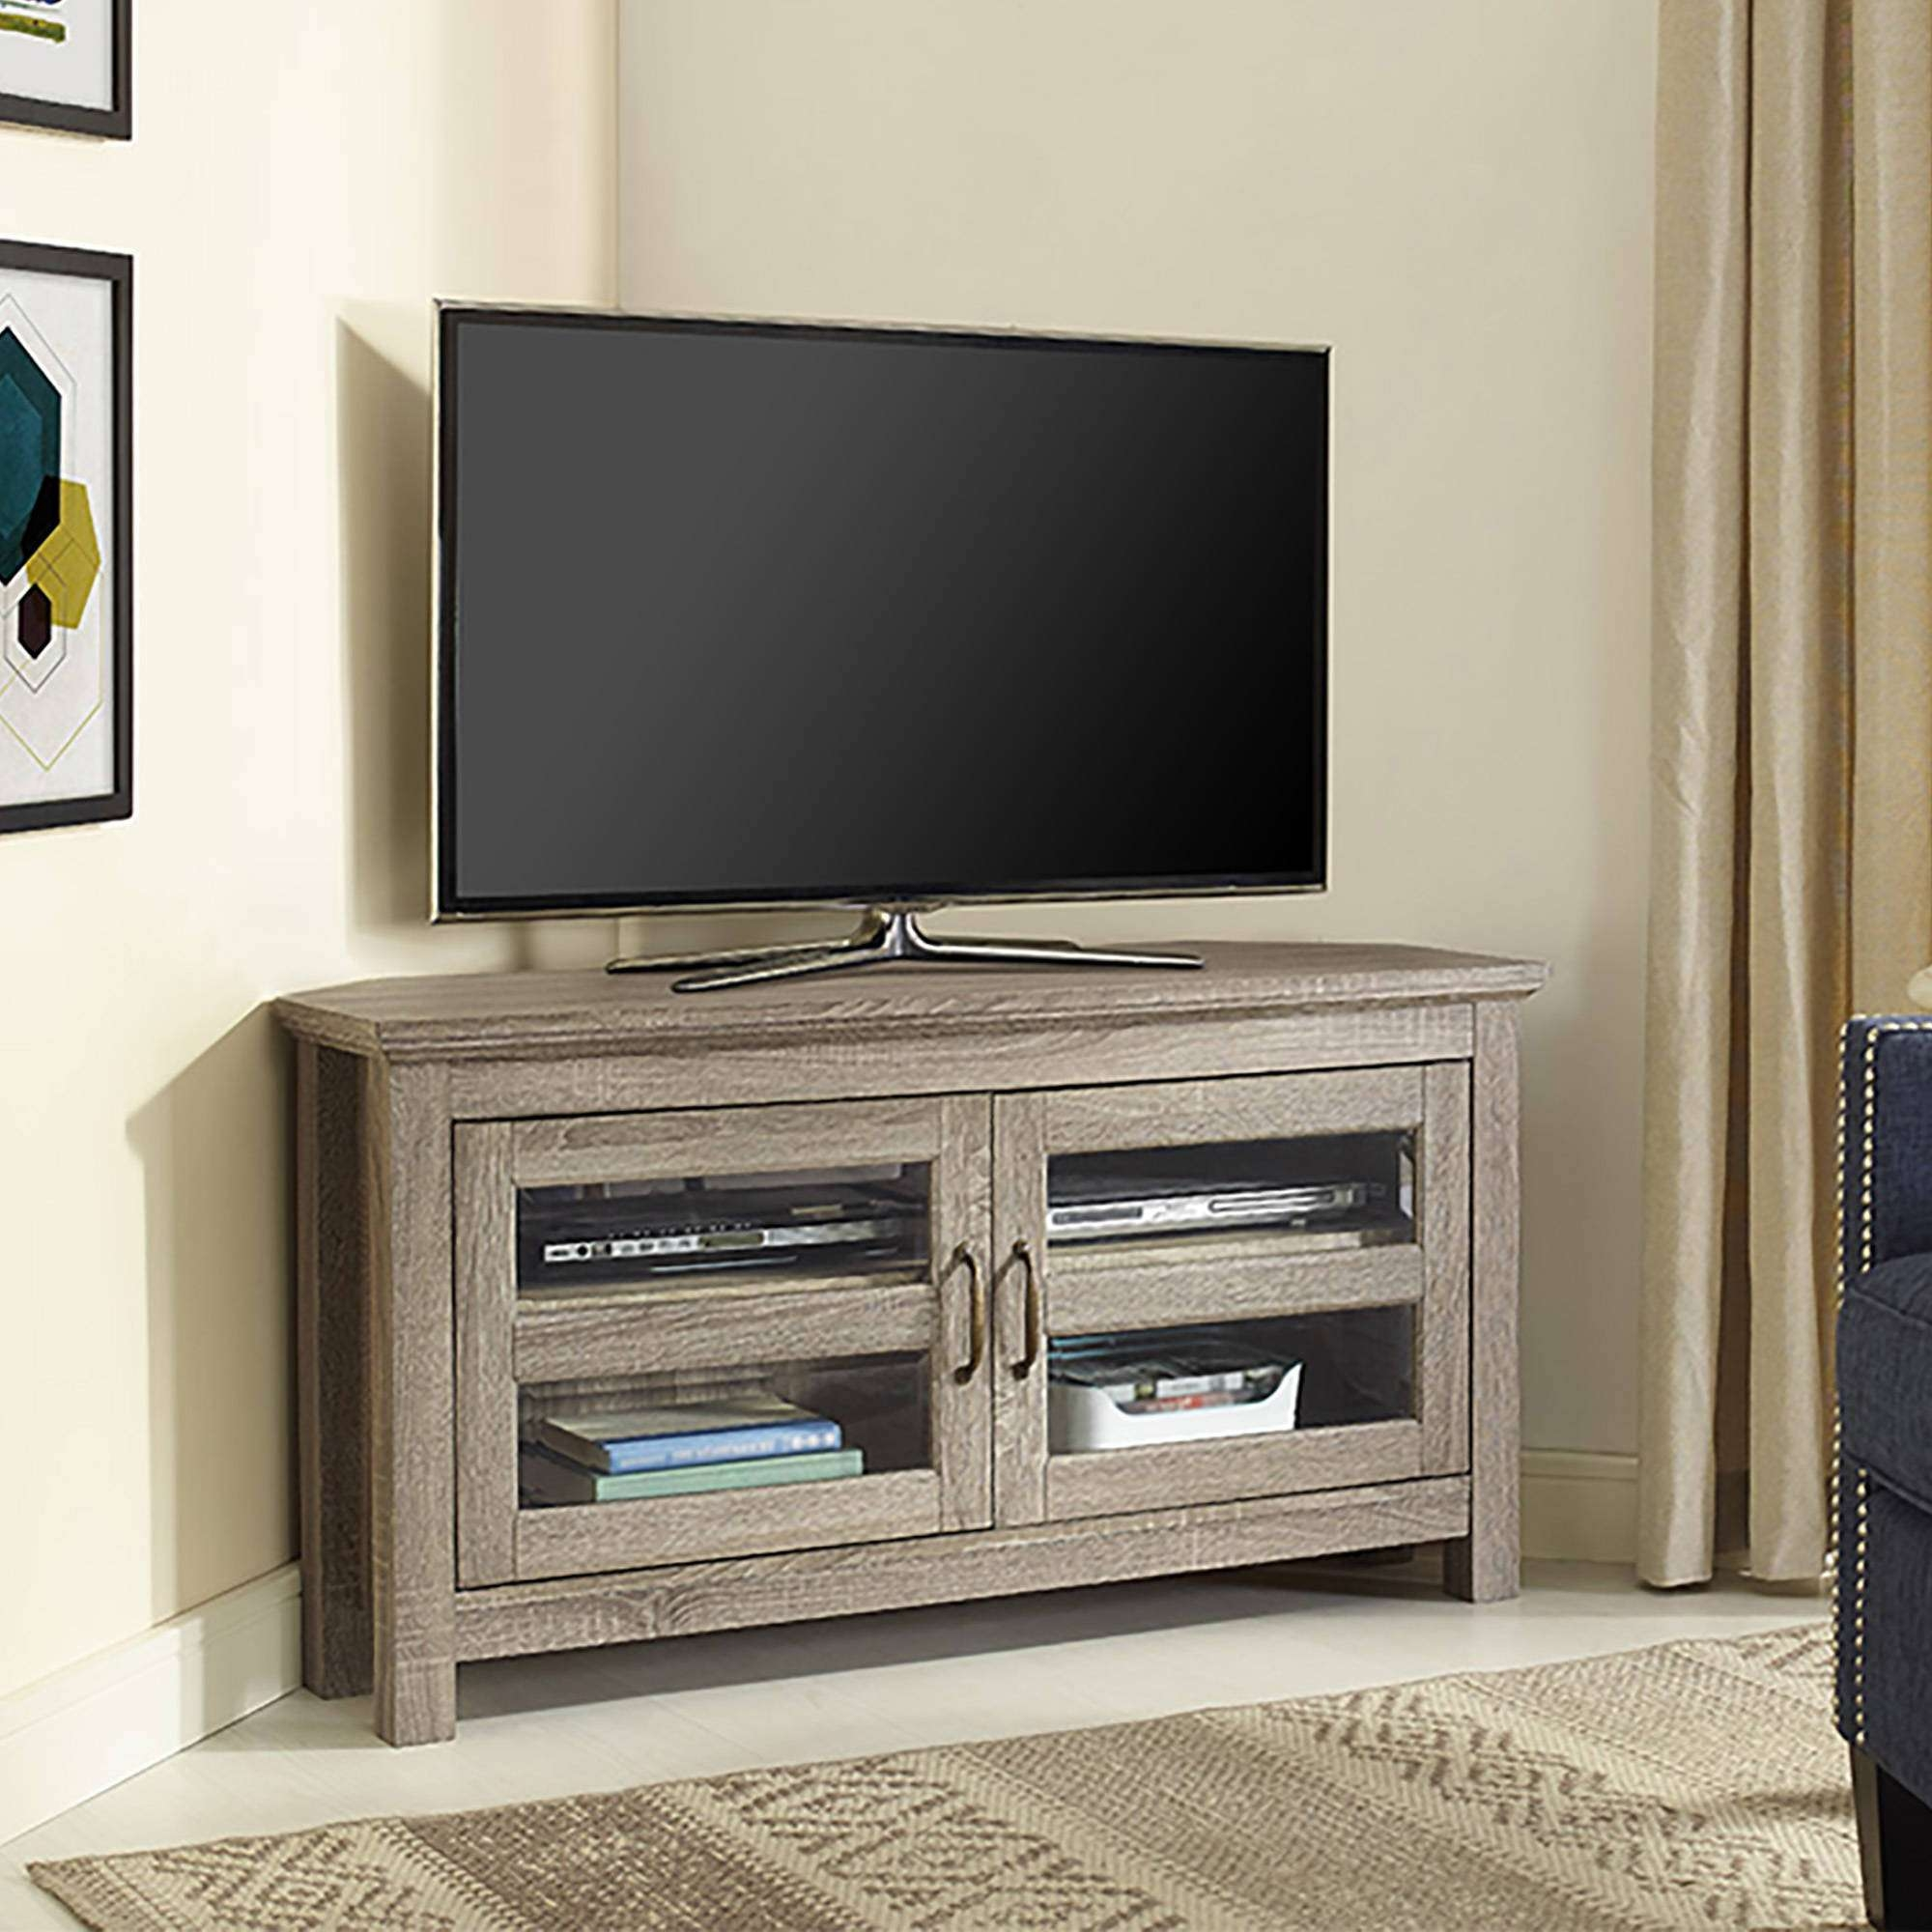 Fancy Walker Edison Corner Tv Stand 64 On Home Designing Intended For Corner Tv Stands (View 7 of 15)